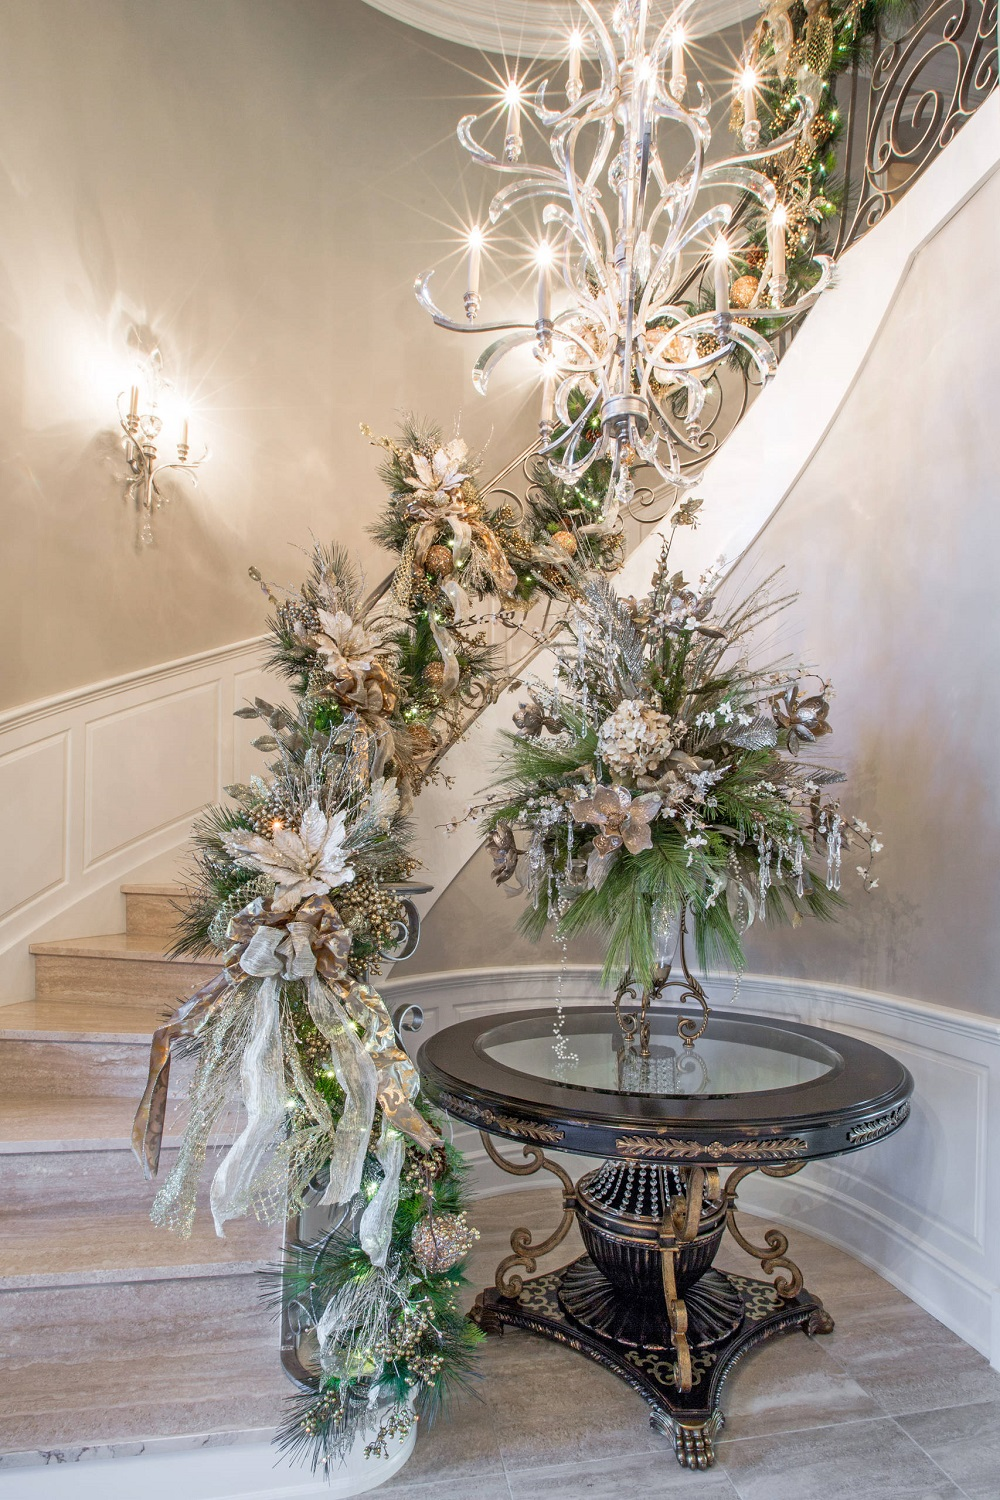 t3-159 Great decoration ideas for Christmas stairs that you should definitely try